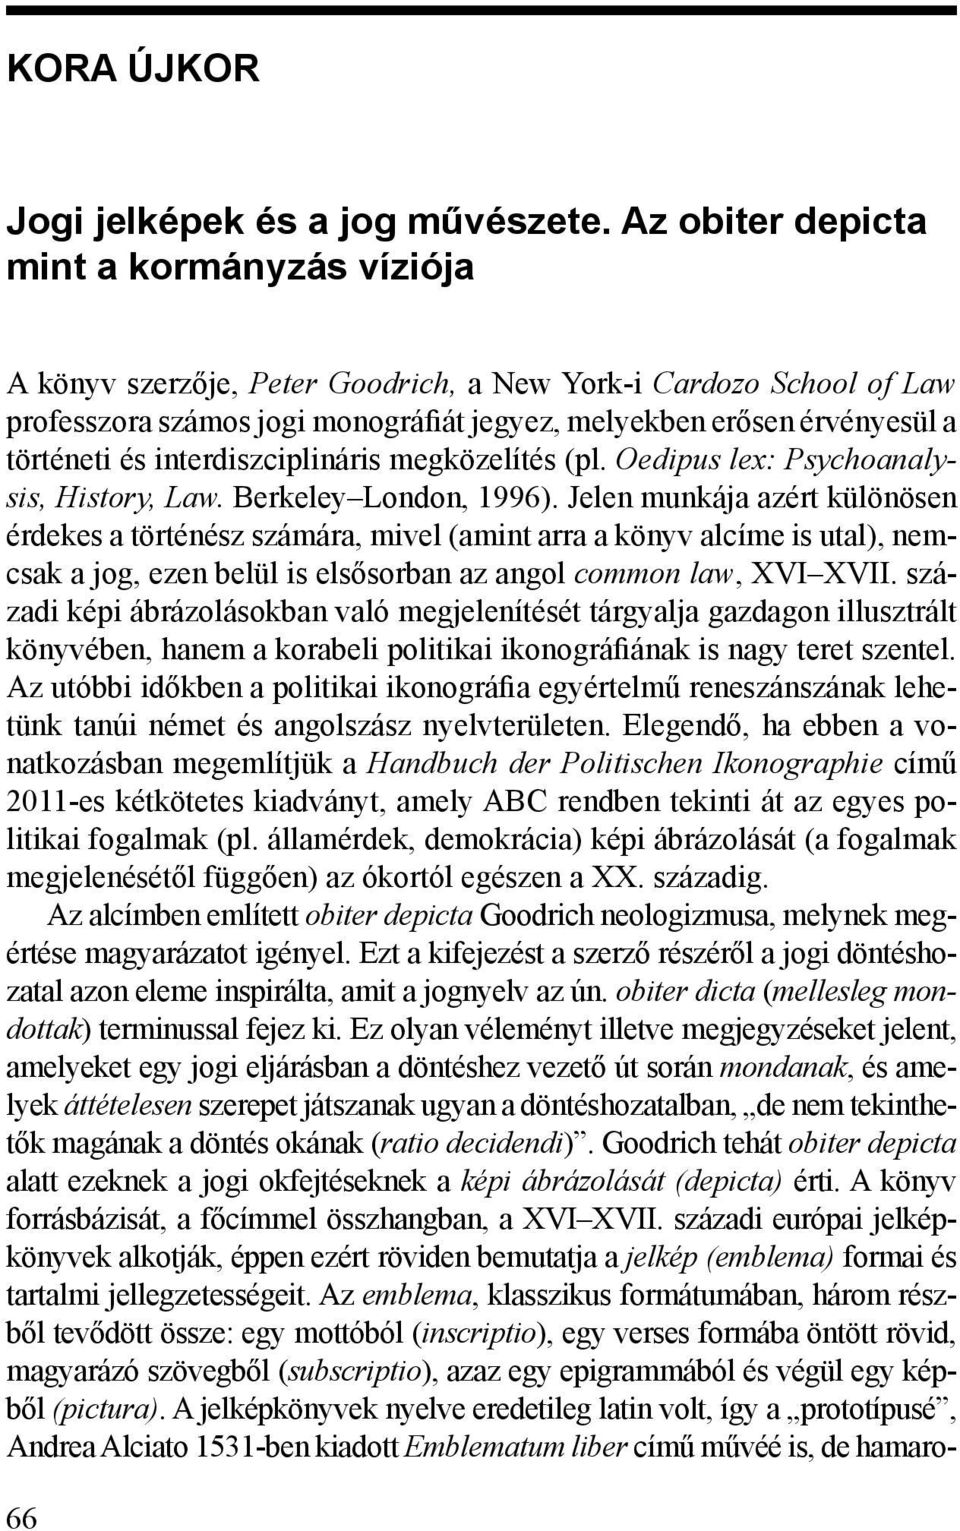 interdiszciplináris megközelítés (pl. Oedipus lex: Psychoanalysis, History, Law. Berkeley London, 1996).